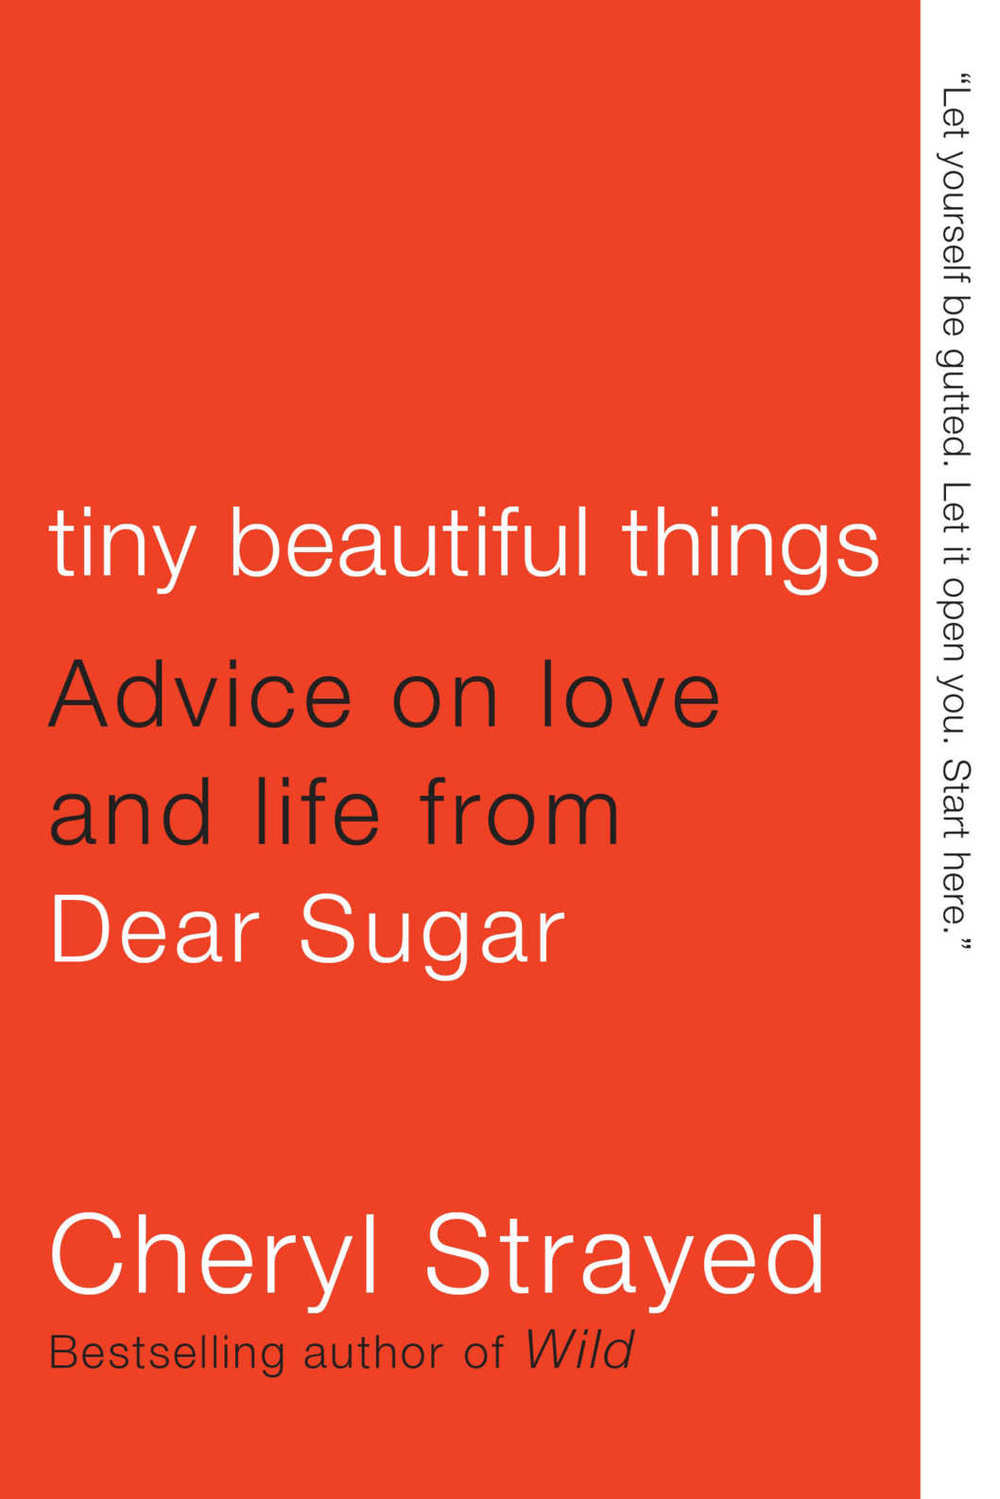 Tiny Beautiful Things by Cheryl Strayed